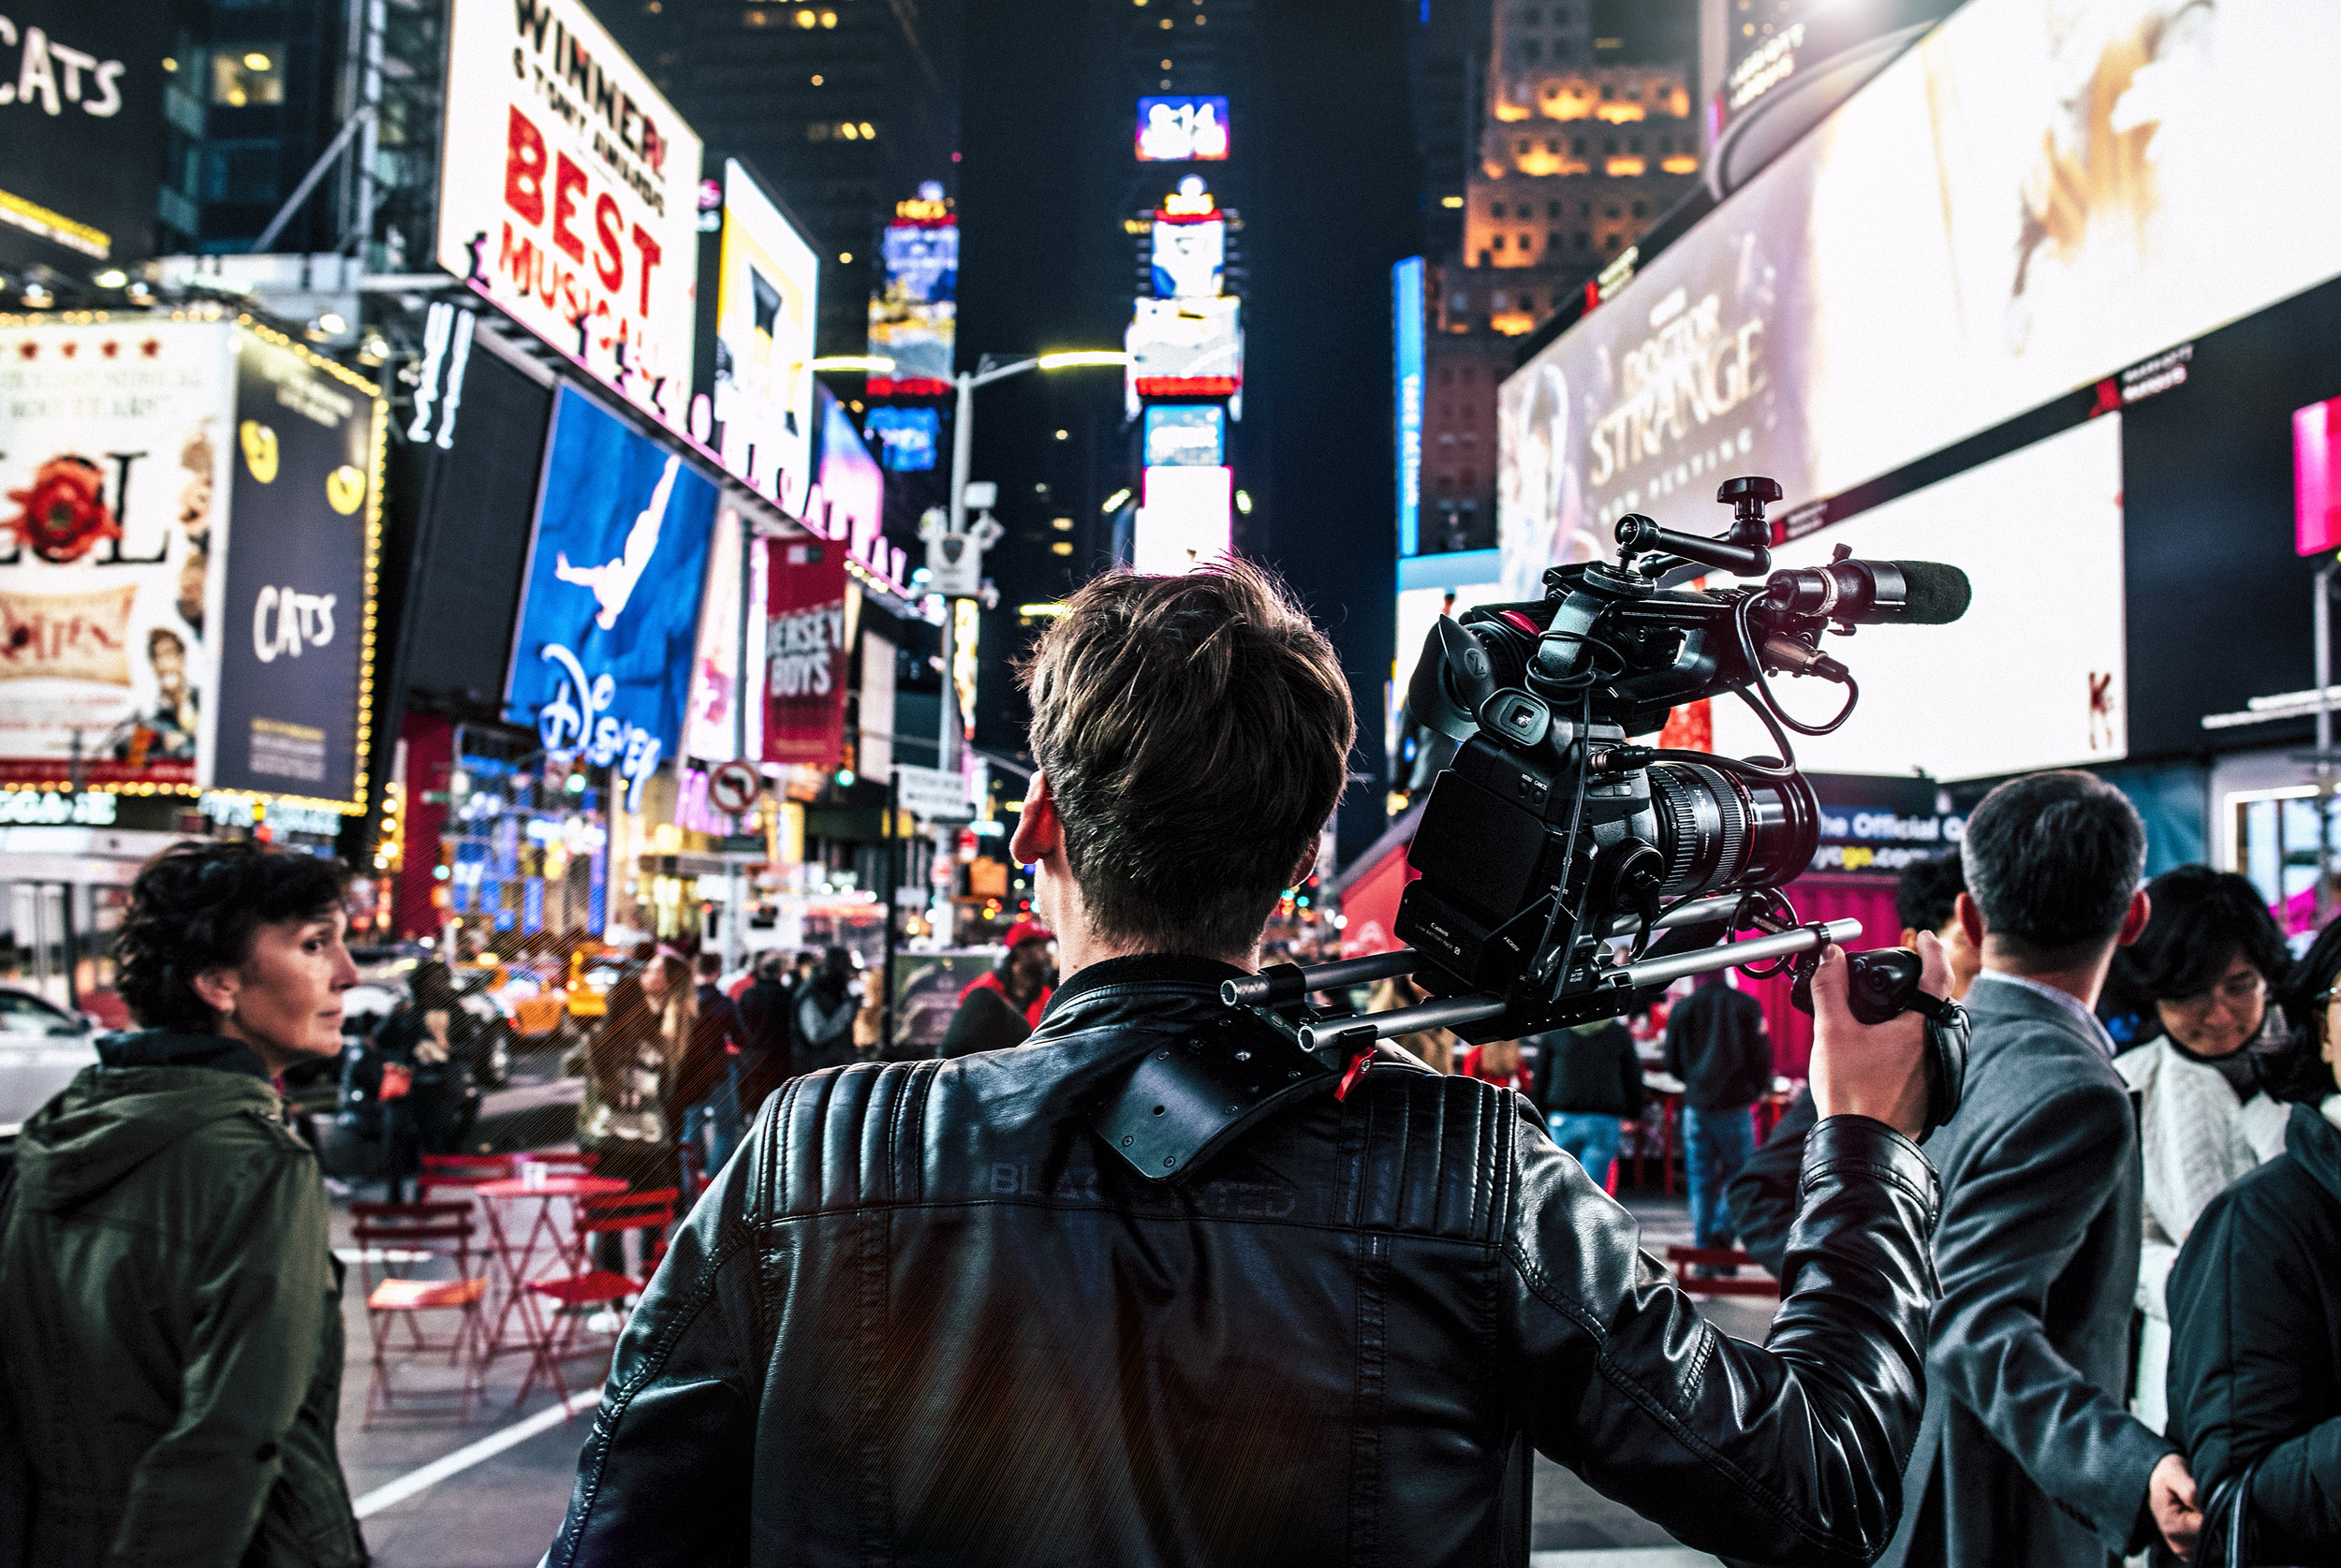 THE GRIND IS REAL  This is Pieter. He's a documentary videographer from the Netherlands and it was his first day in the USA and was already at work in Times Square, NY